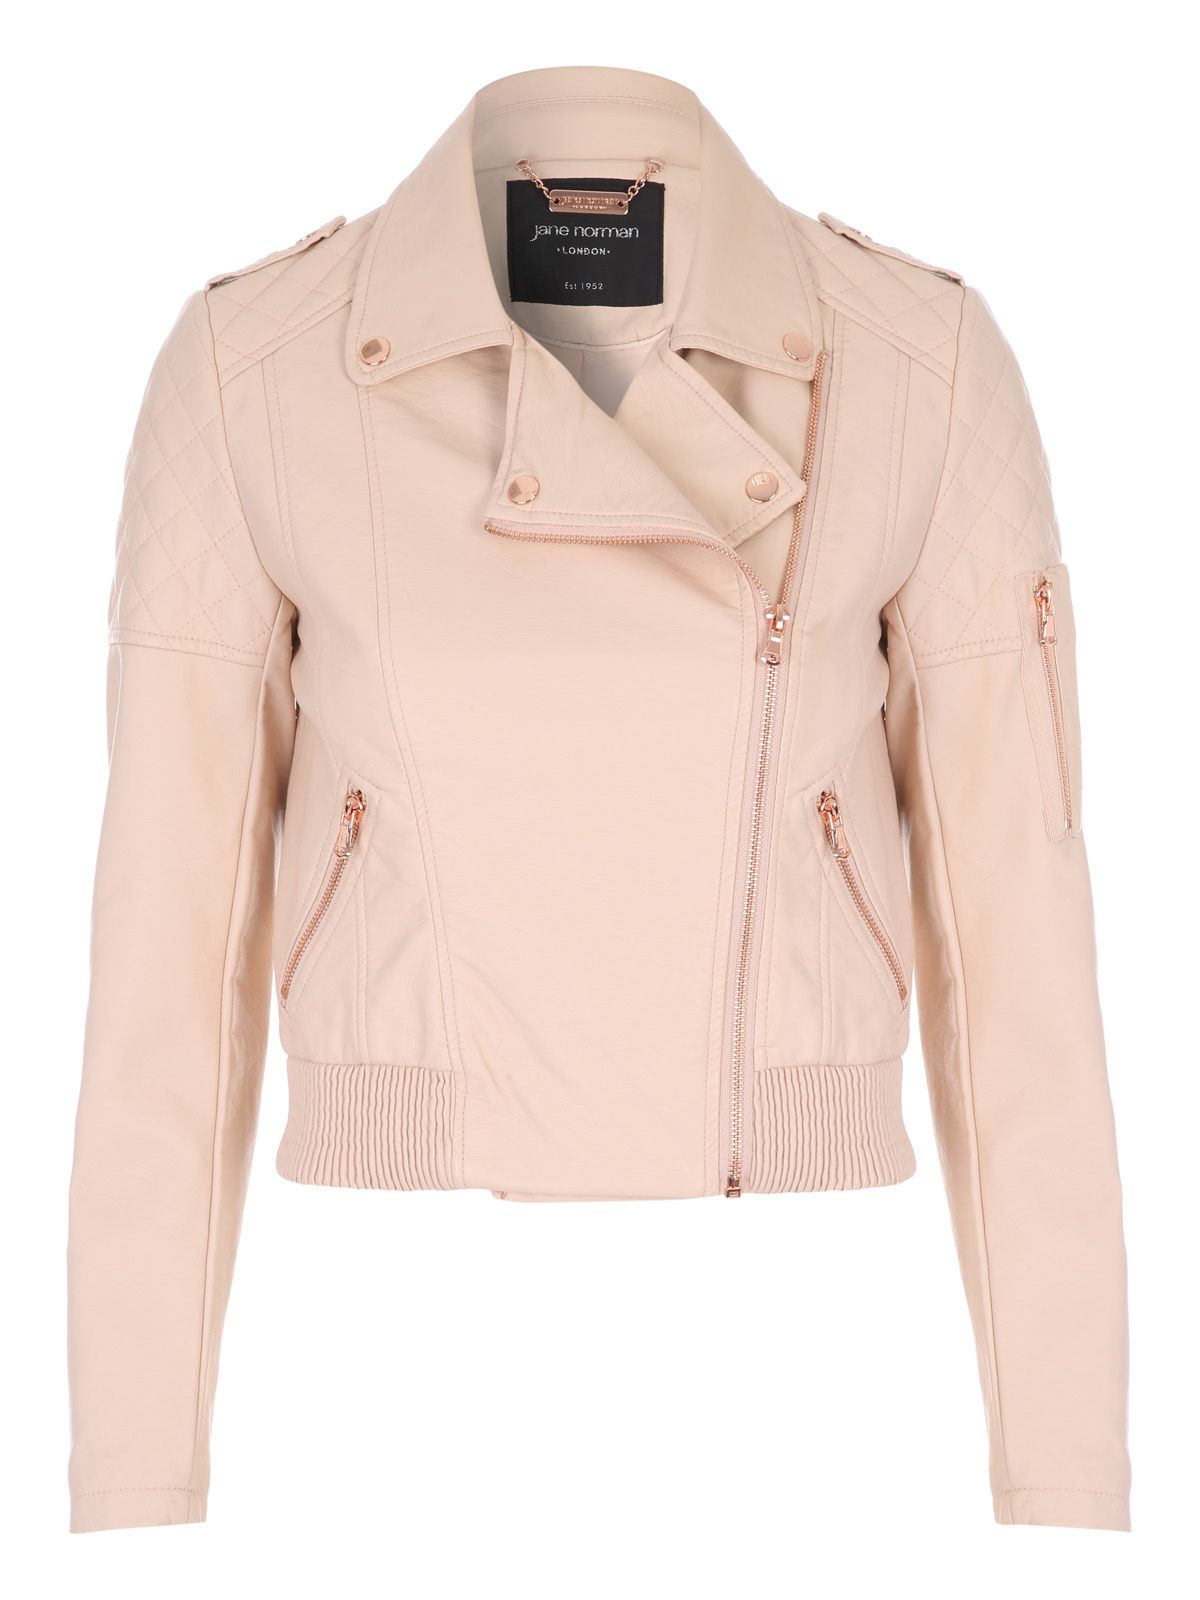 Jane Norman Black PU Bomber Jacket, Pastel Pink